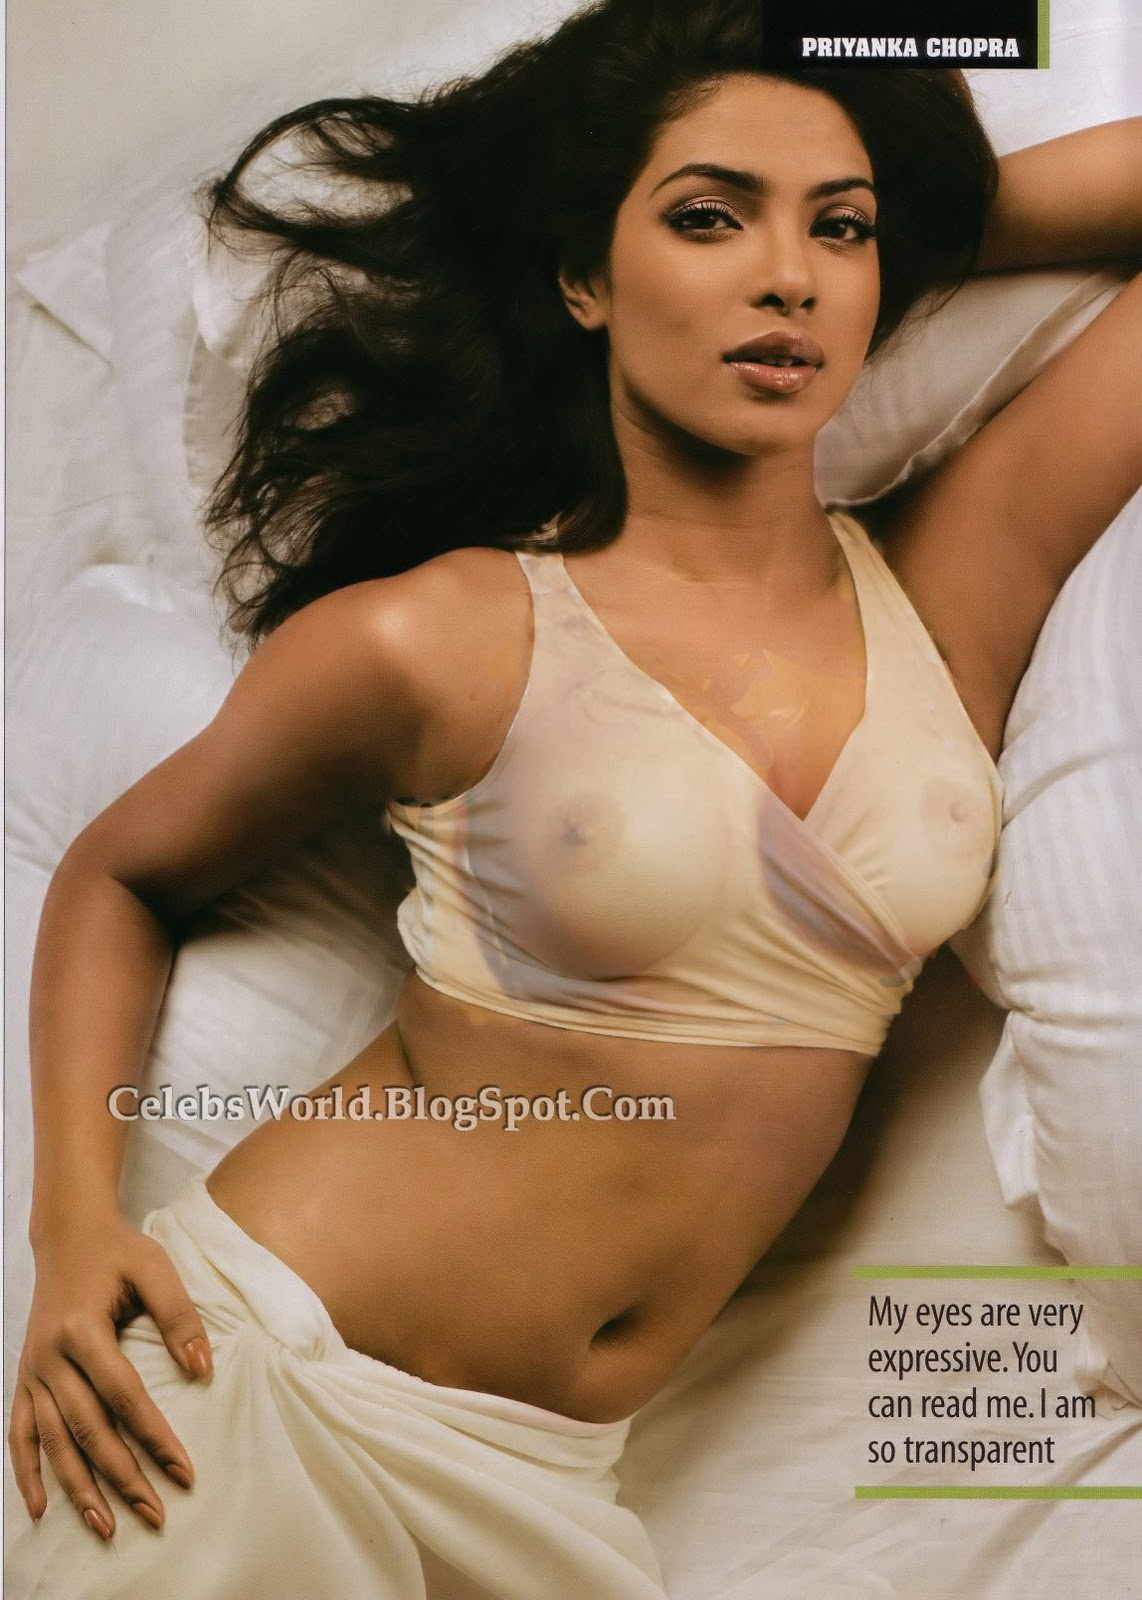 Fucking Photos Of Priyanka Chopra priyanka chopra hot sex nude - nu porn